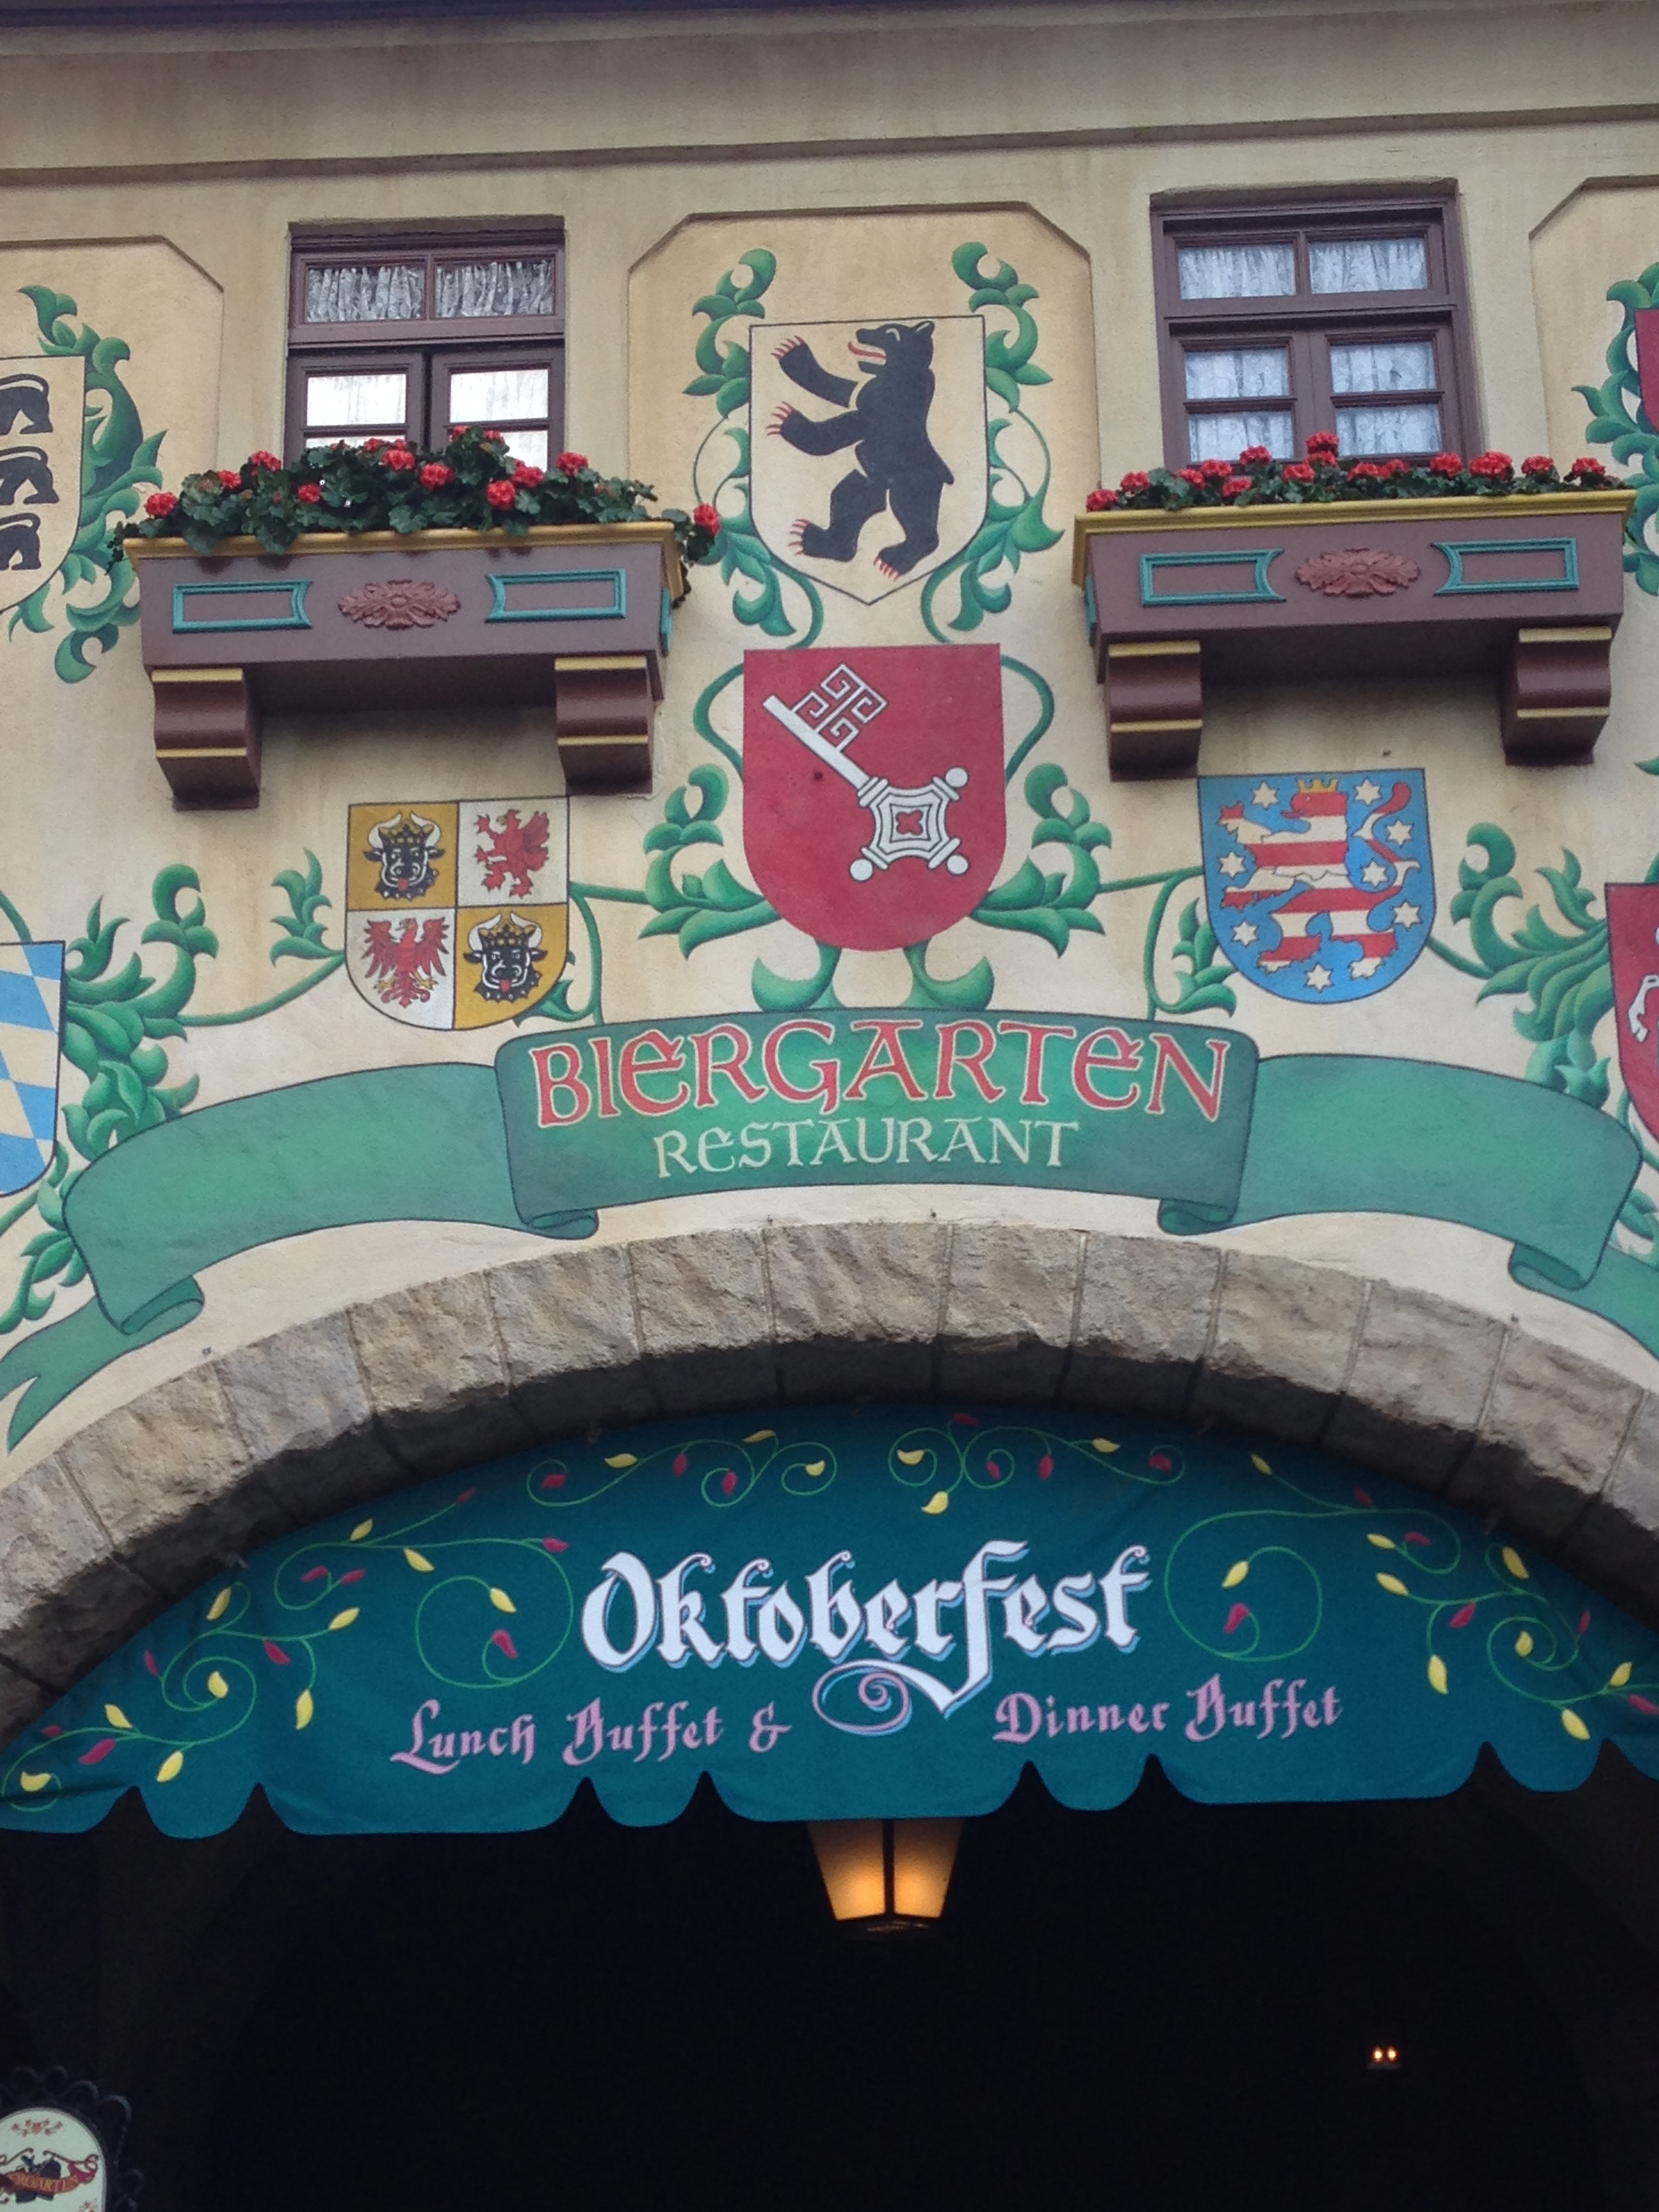 Dining at Disney World: Biergarten Deliciousness